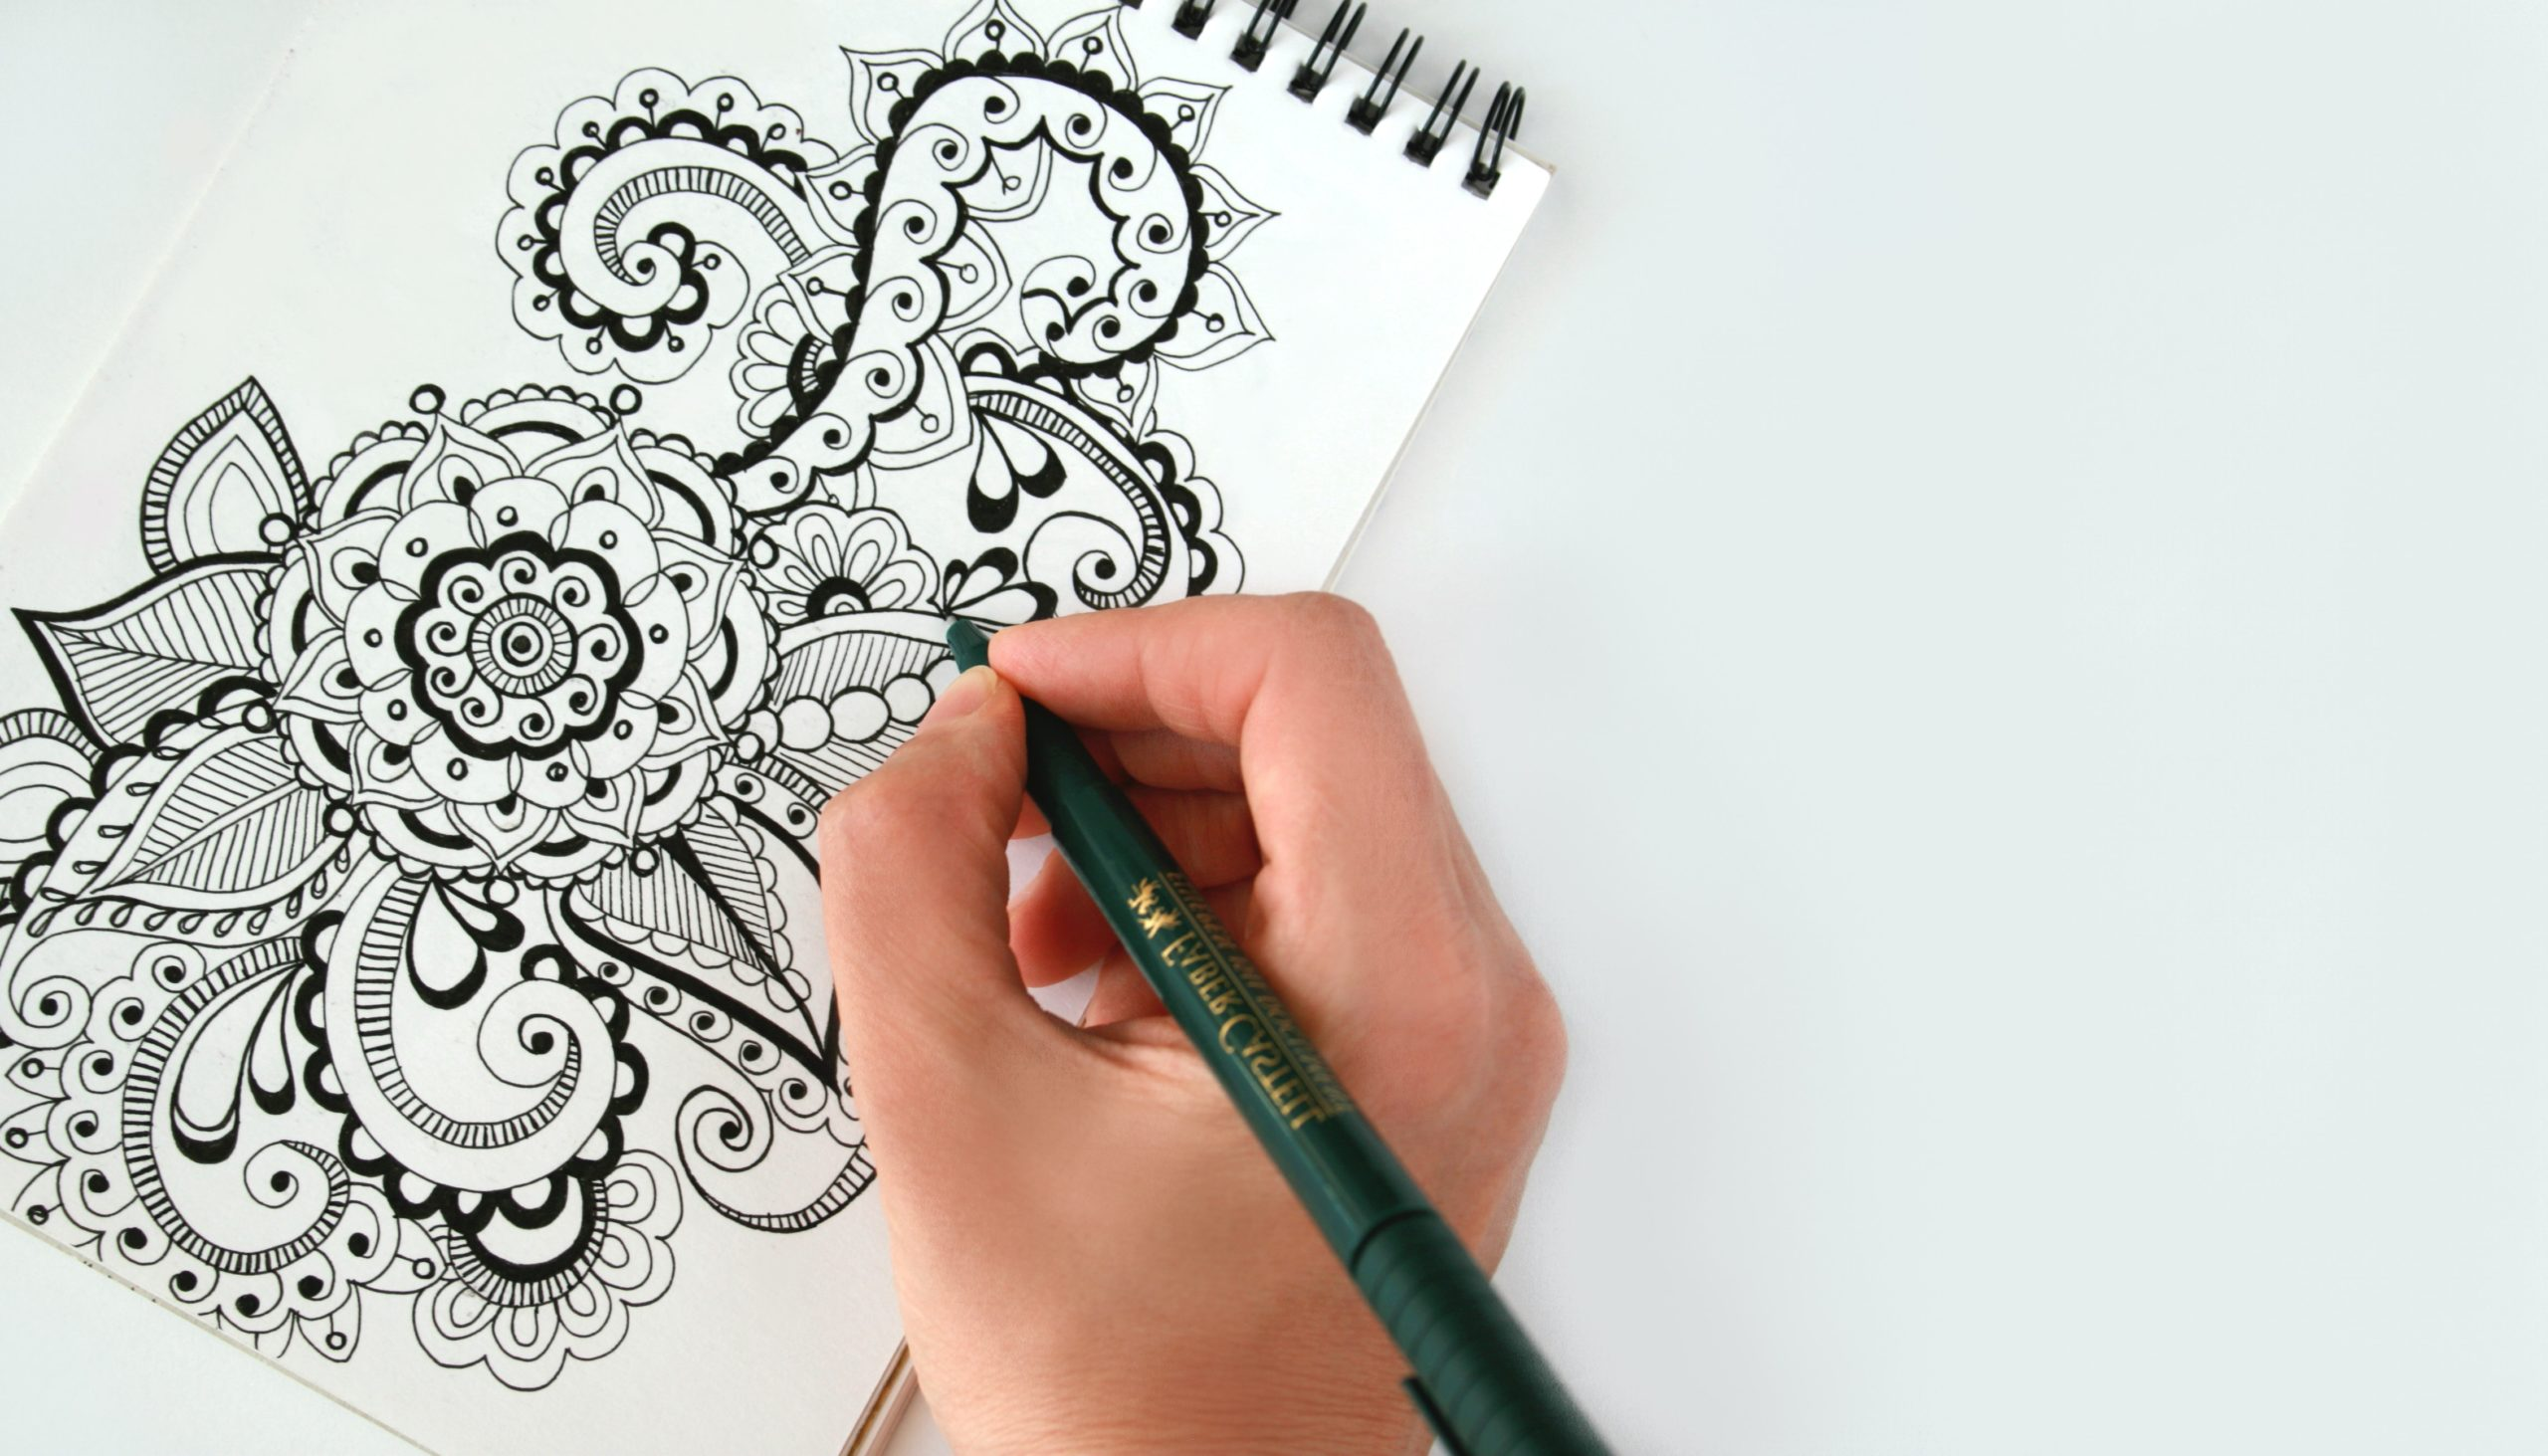 4 Ways To Use A Felt Tip Pen- Methods To Get Started!